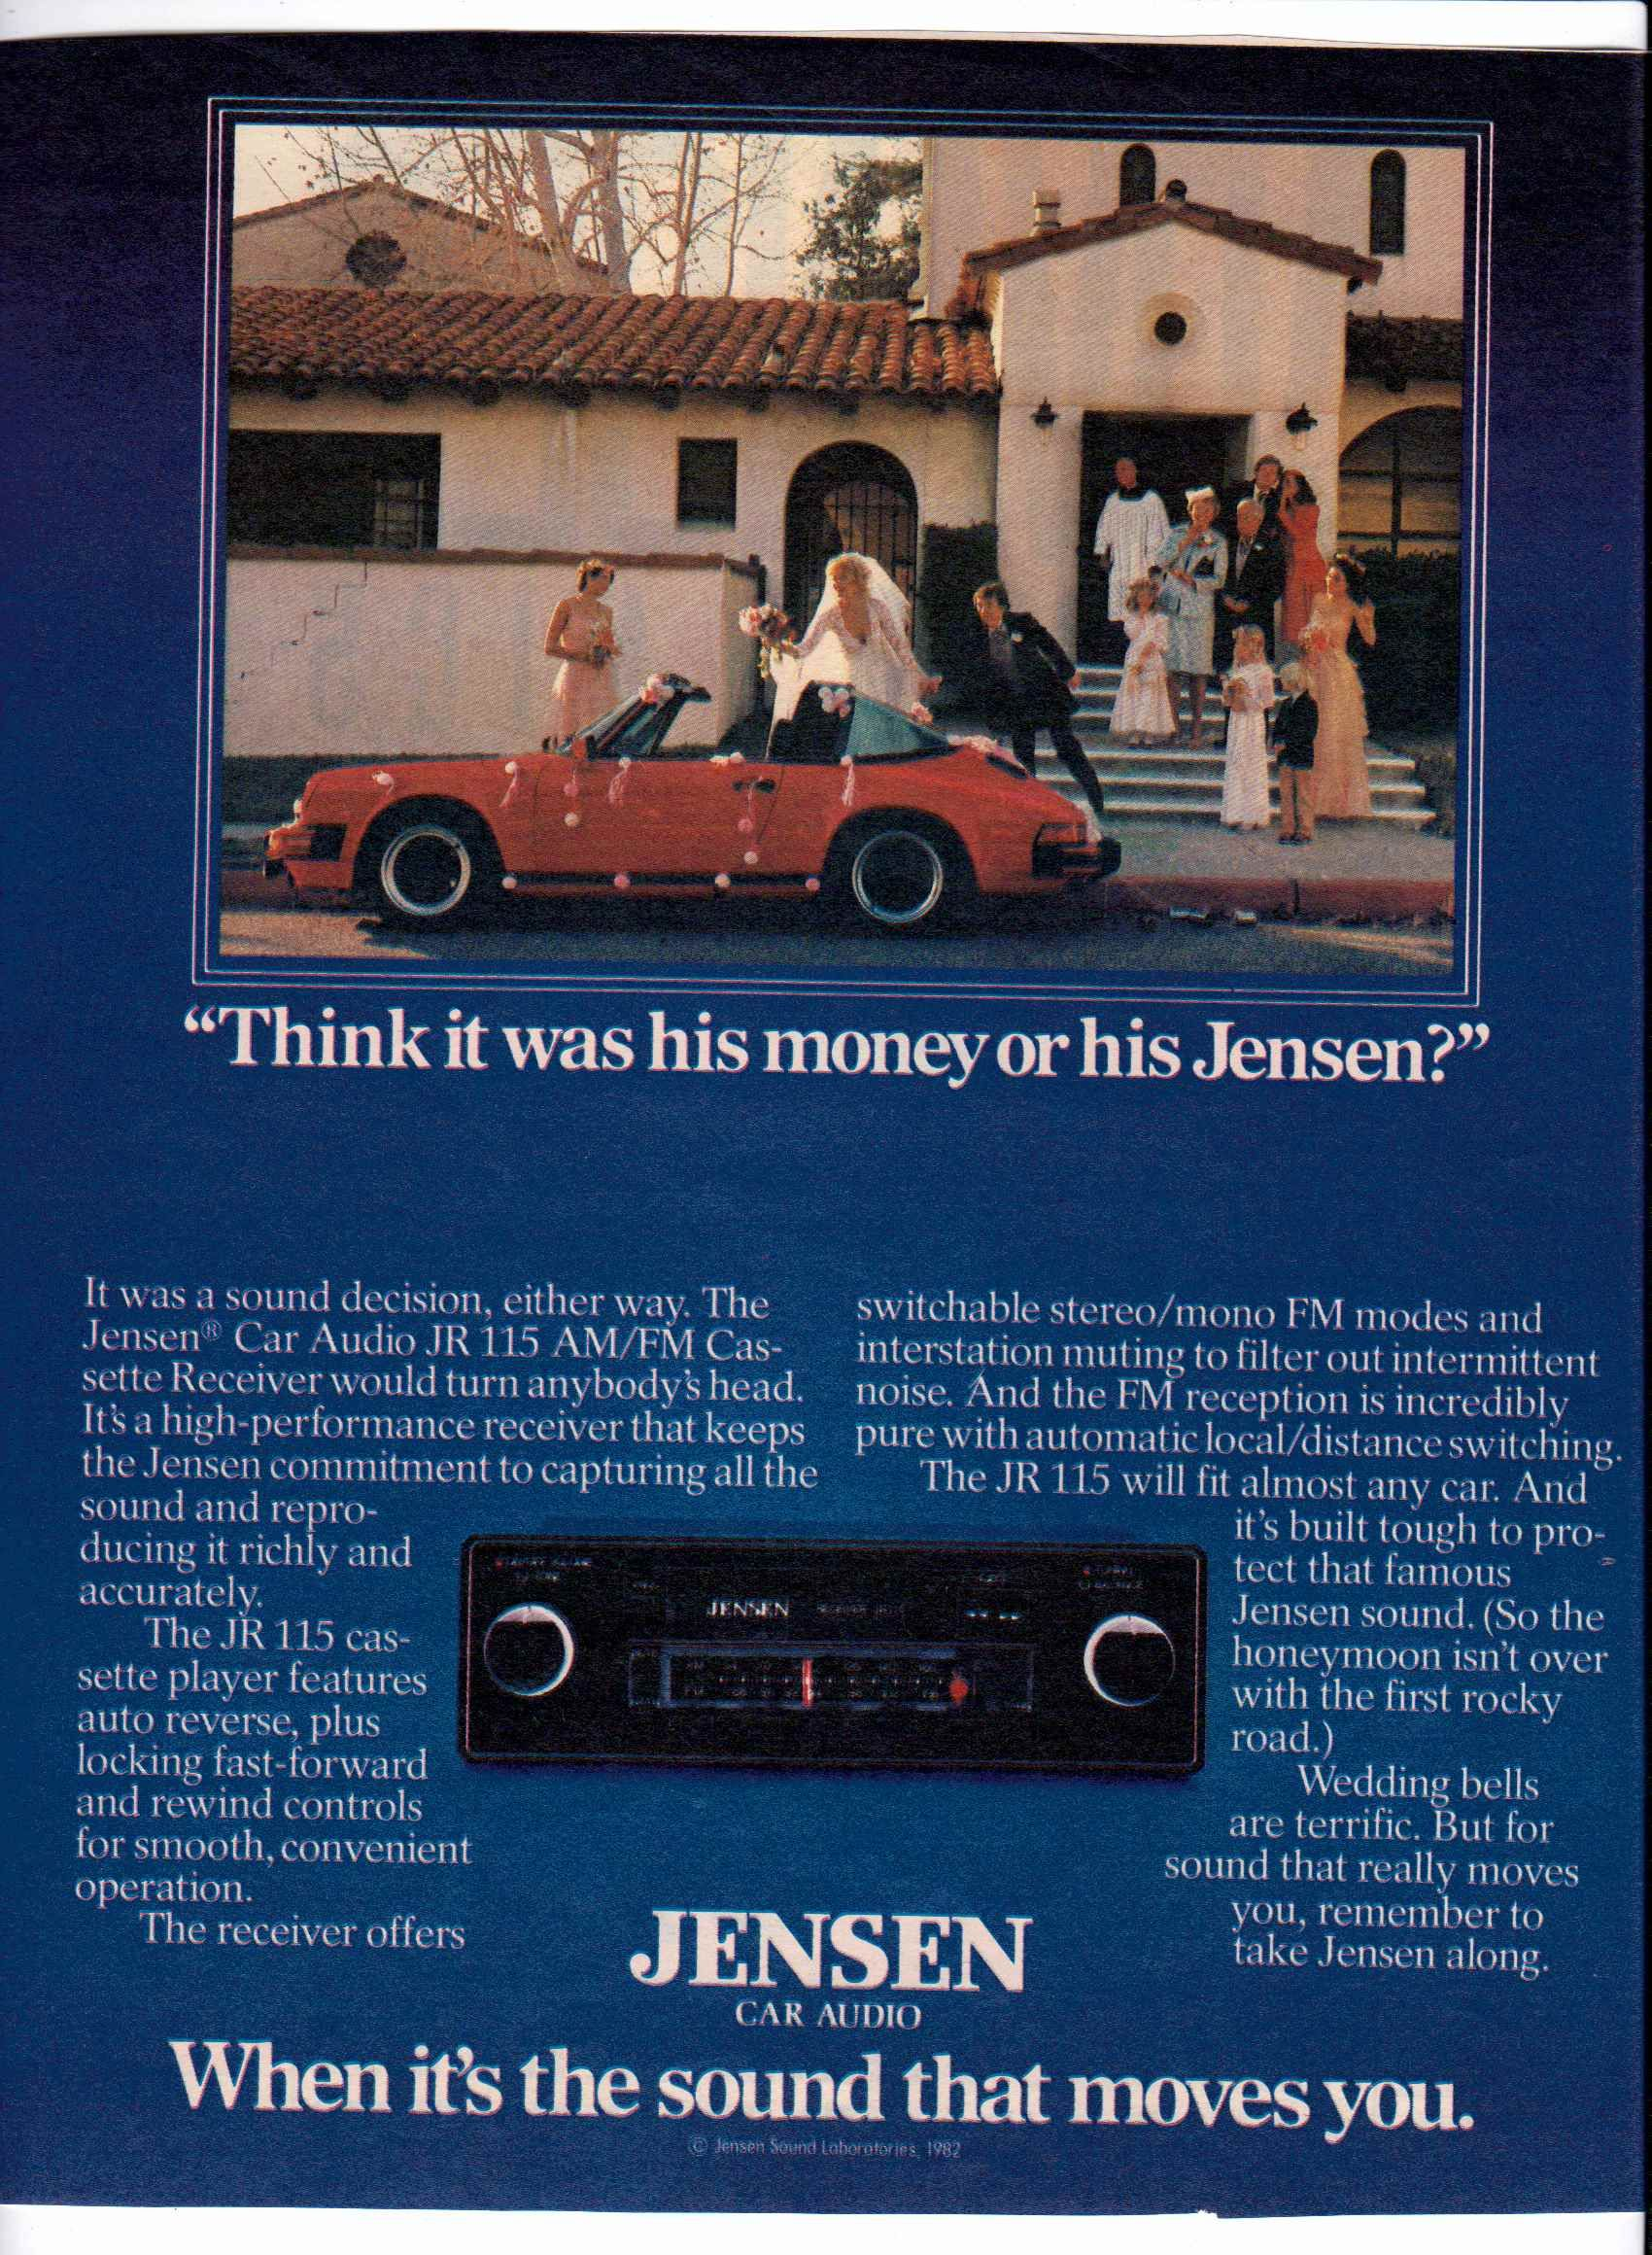 1982 JVC JR-115 cassette stereo ad  | Vintage Car Audio Ads